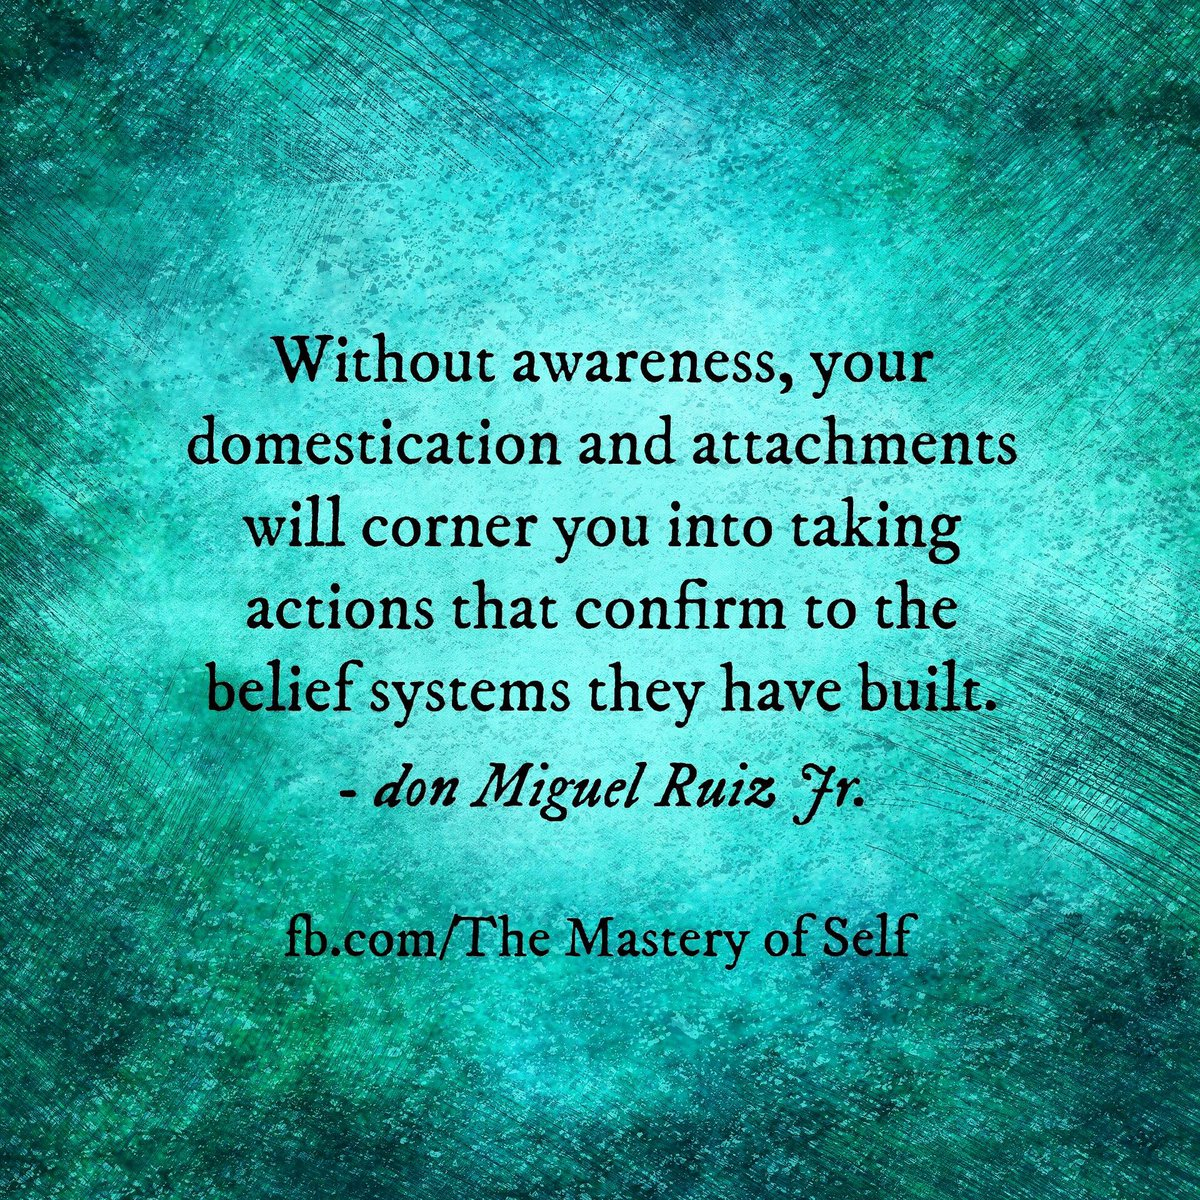 Don Miguel Ruiz Jr On Twitter A Quote From The Mastery Of Self By